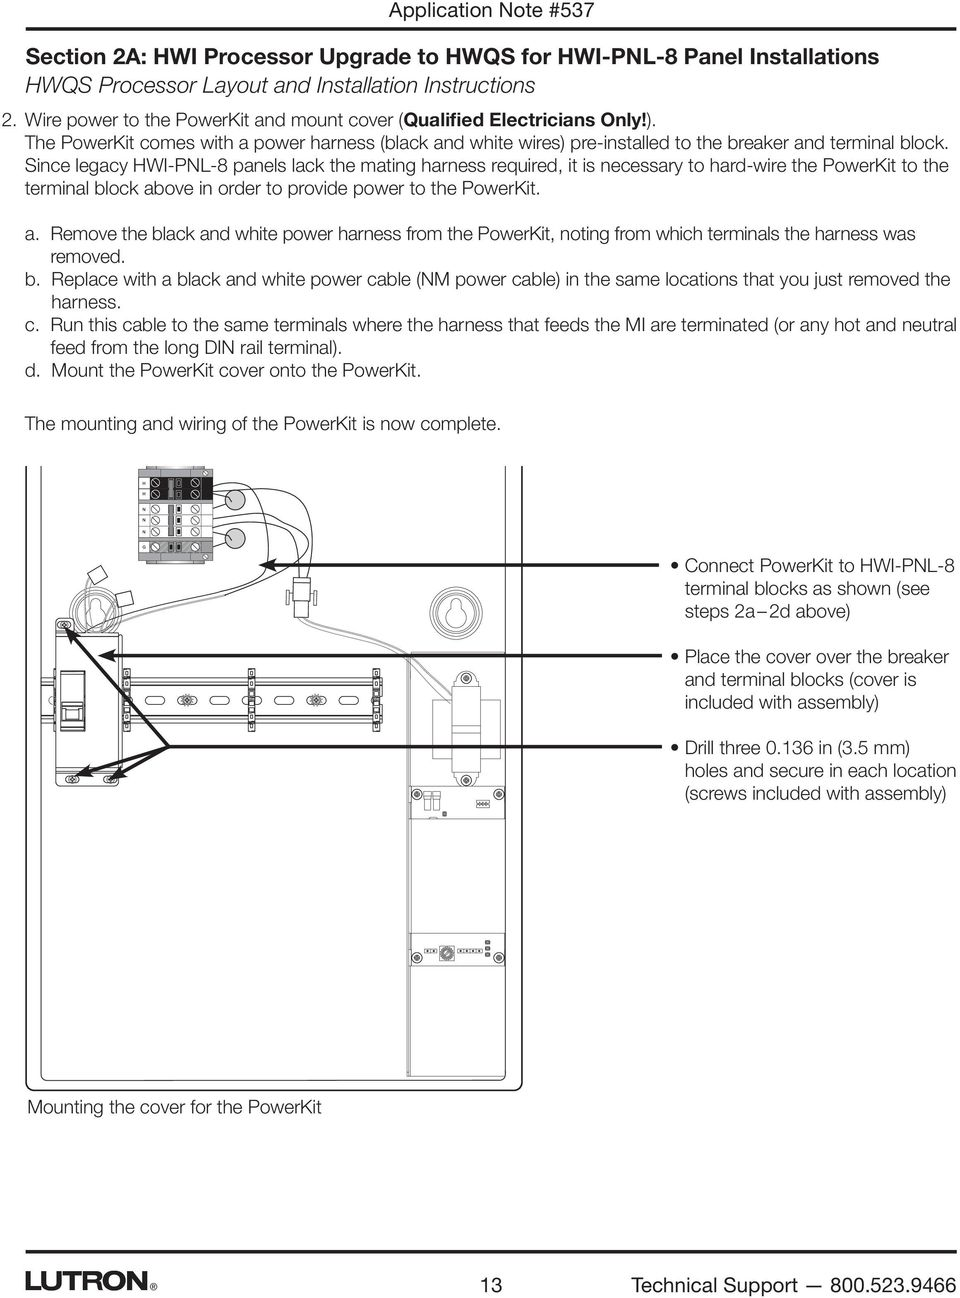 Hwi Pnl Lutron Homeworks Wiring Diagram 5 Libraries Shade Diagrams Application Note 537 Revision D August 2015 Solutions For Upgradingsince Legacy 8 Panels Lack